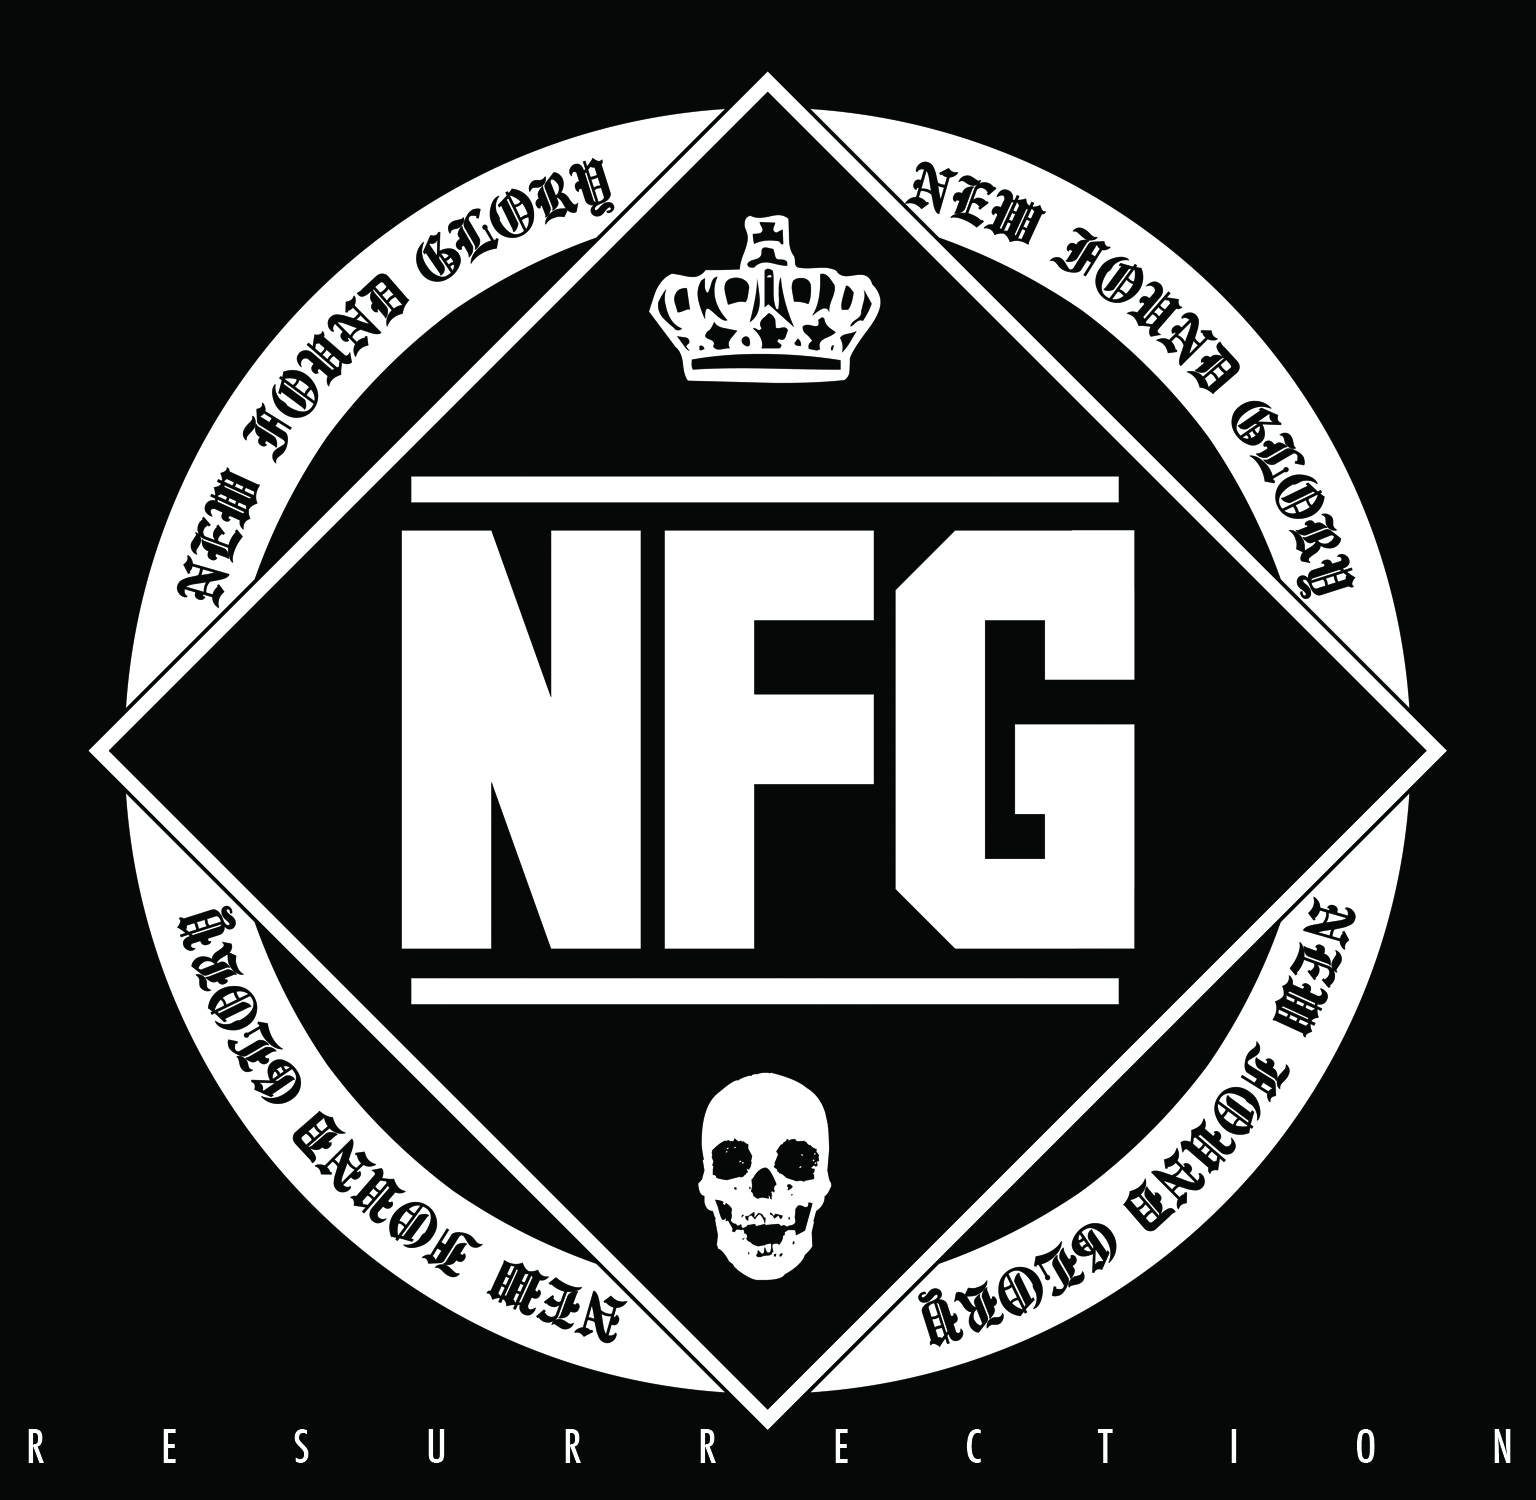 New Found Glory - Resurrection